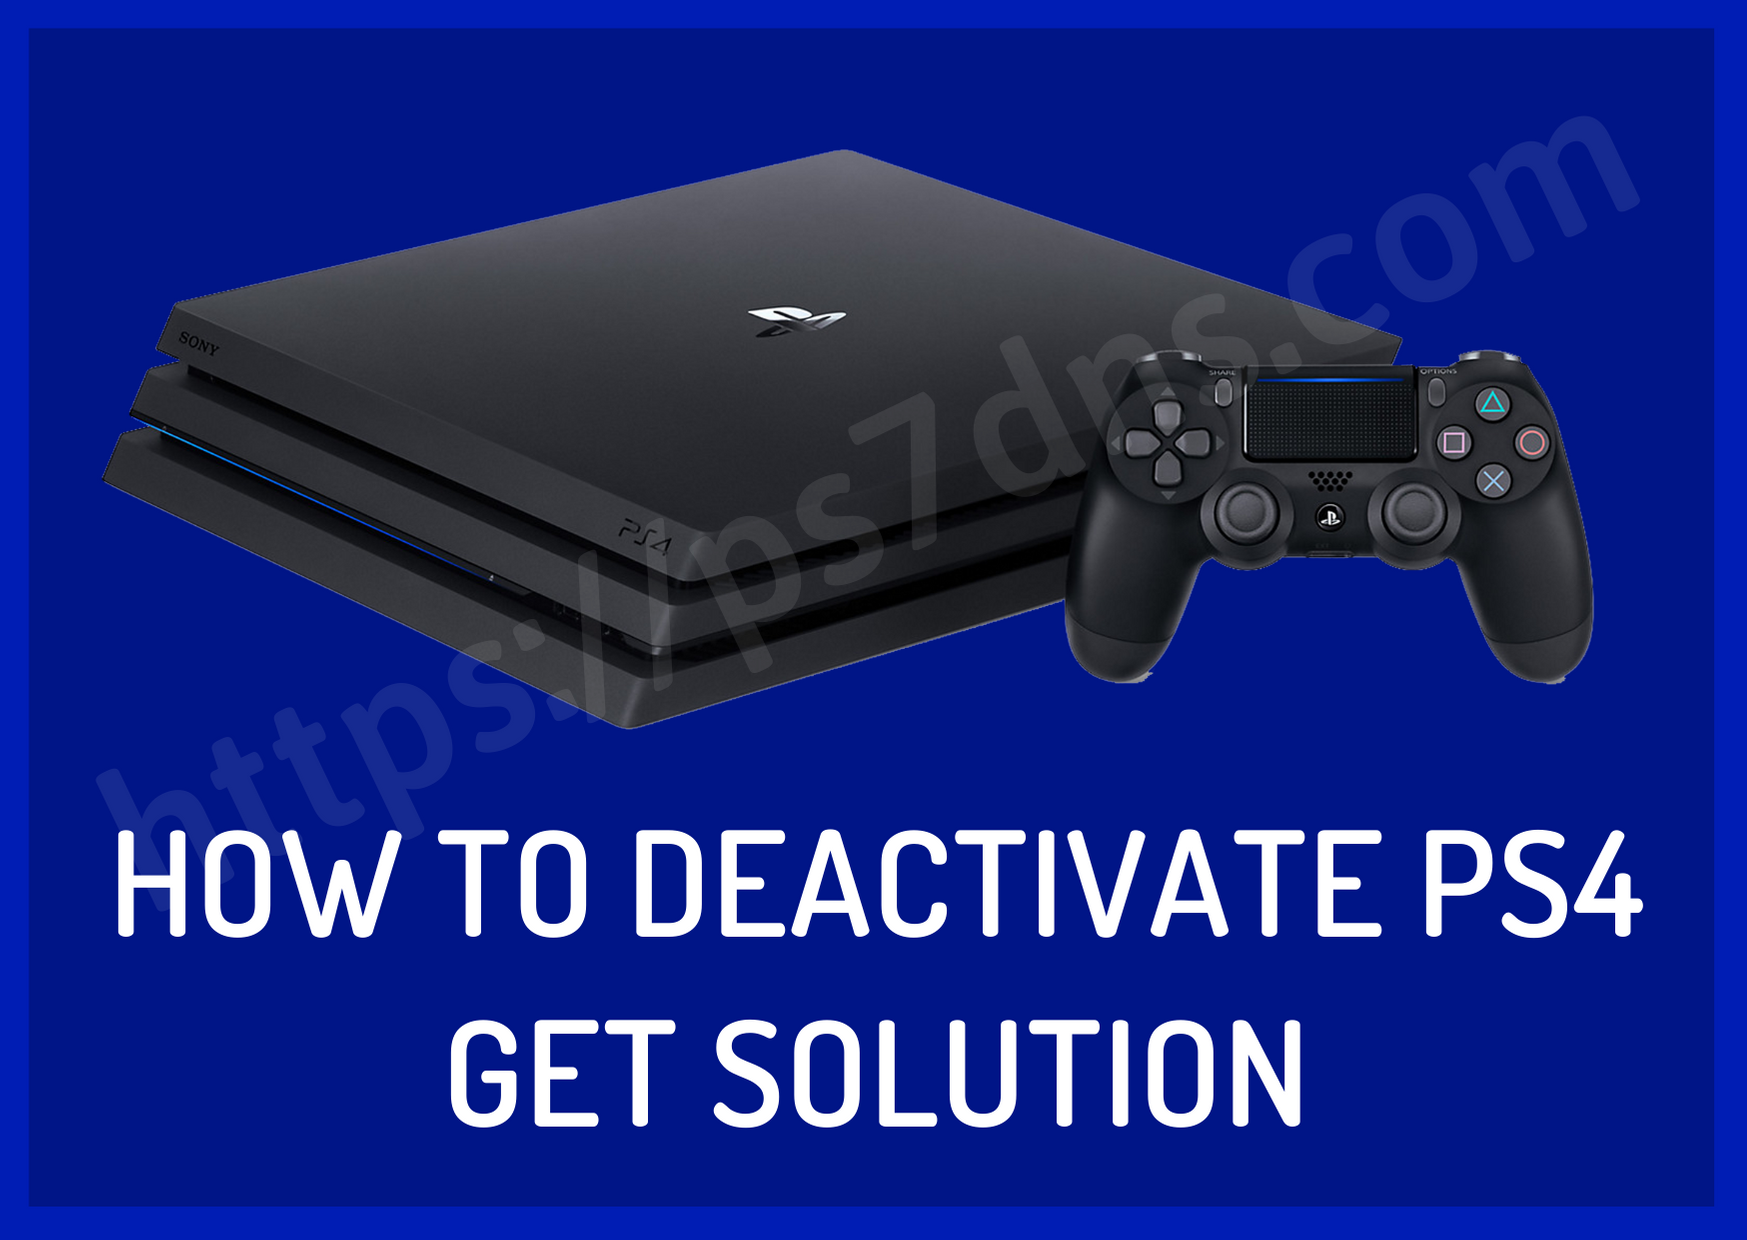 How to Deactivate PS4 - Get Solution